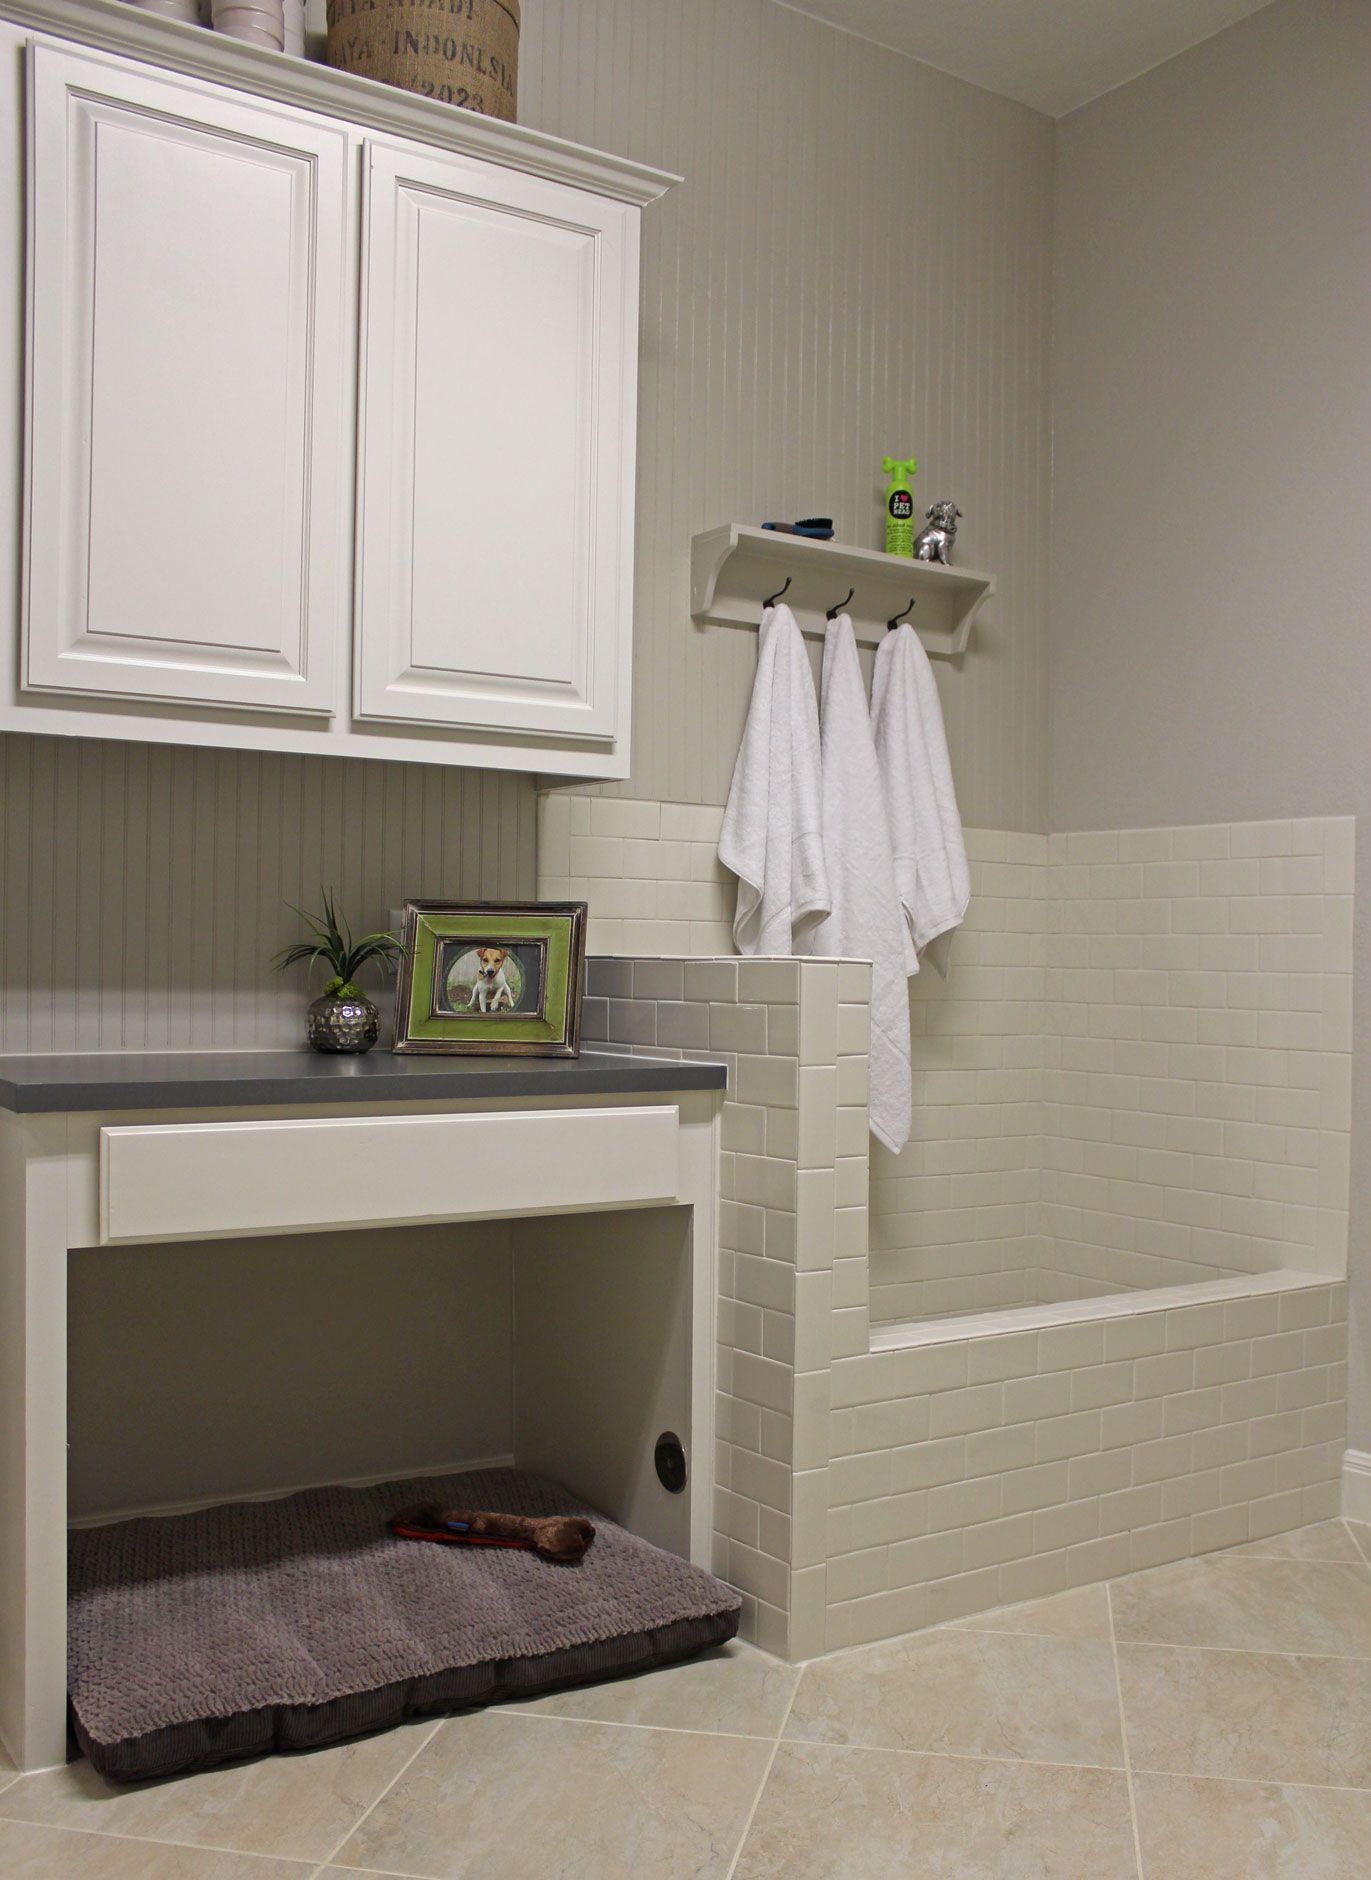 Laundry room with built in shower and under folding